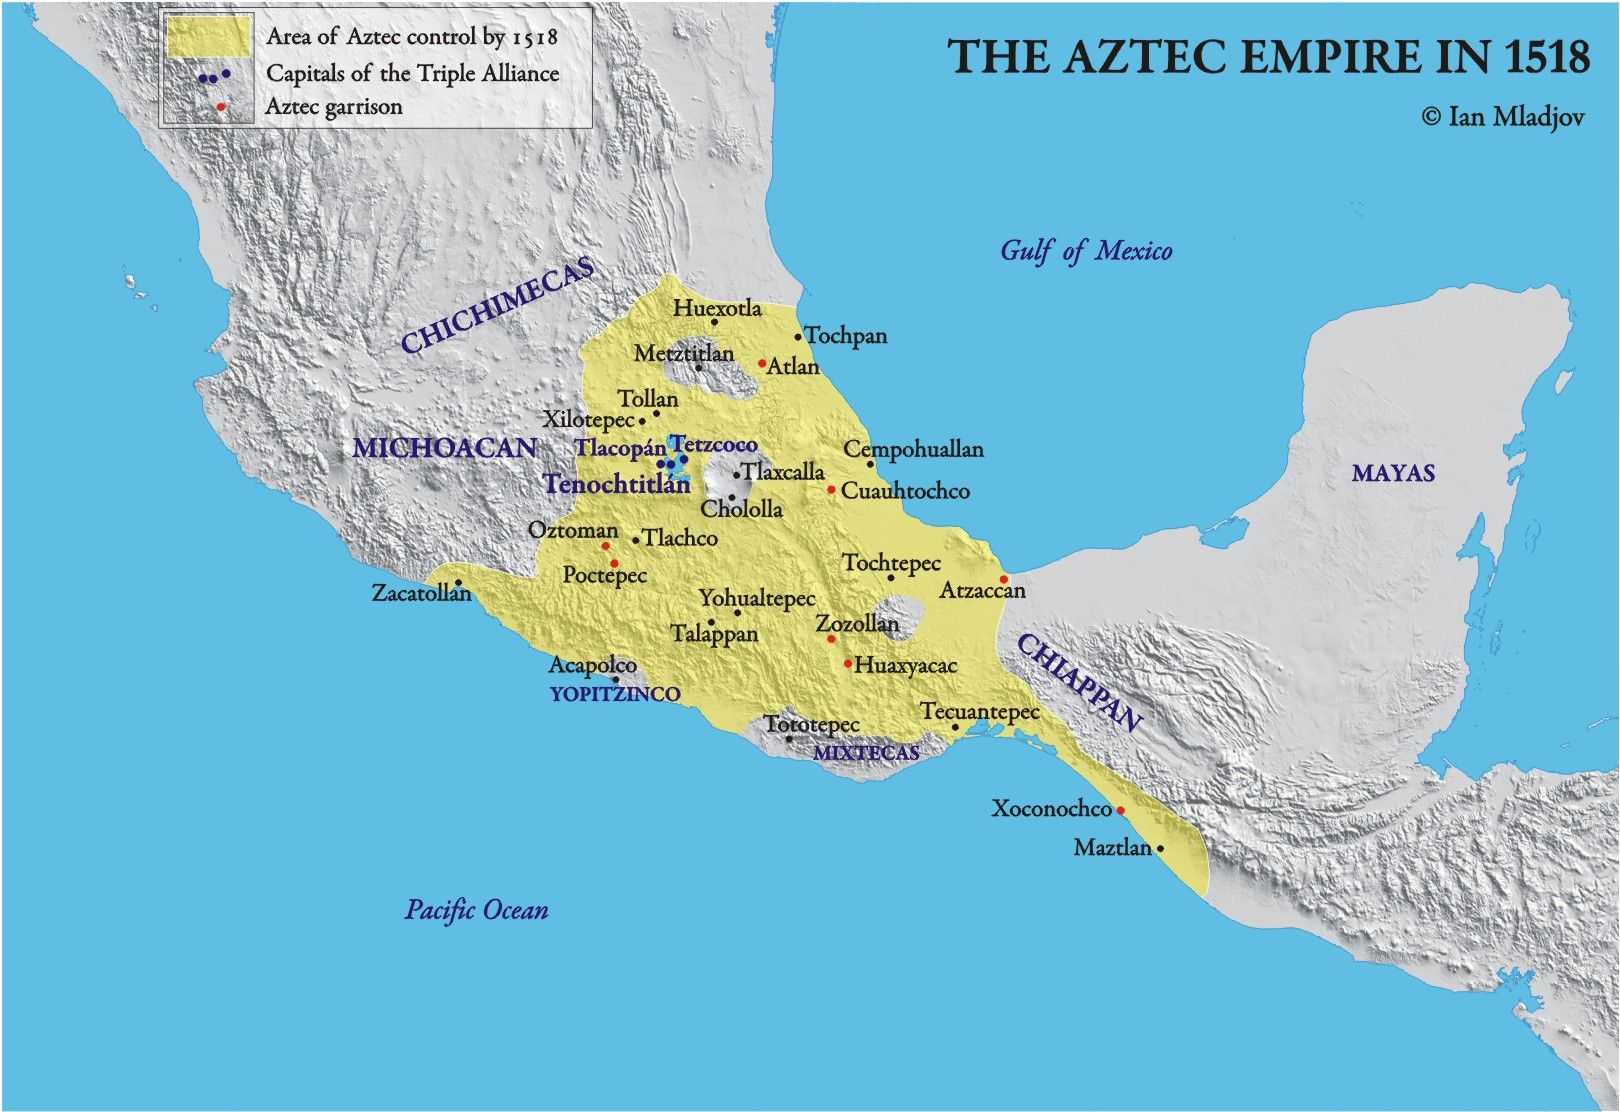 Pin by L. J. Wilson Enterprises LLC on The Aztec Empire | Pinterest ...